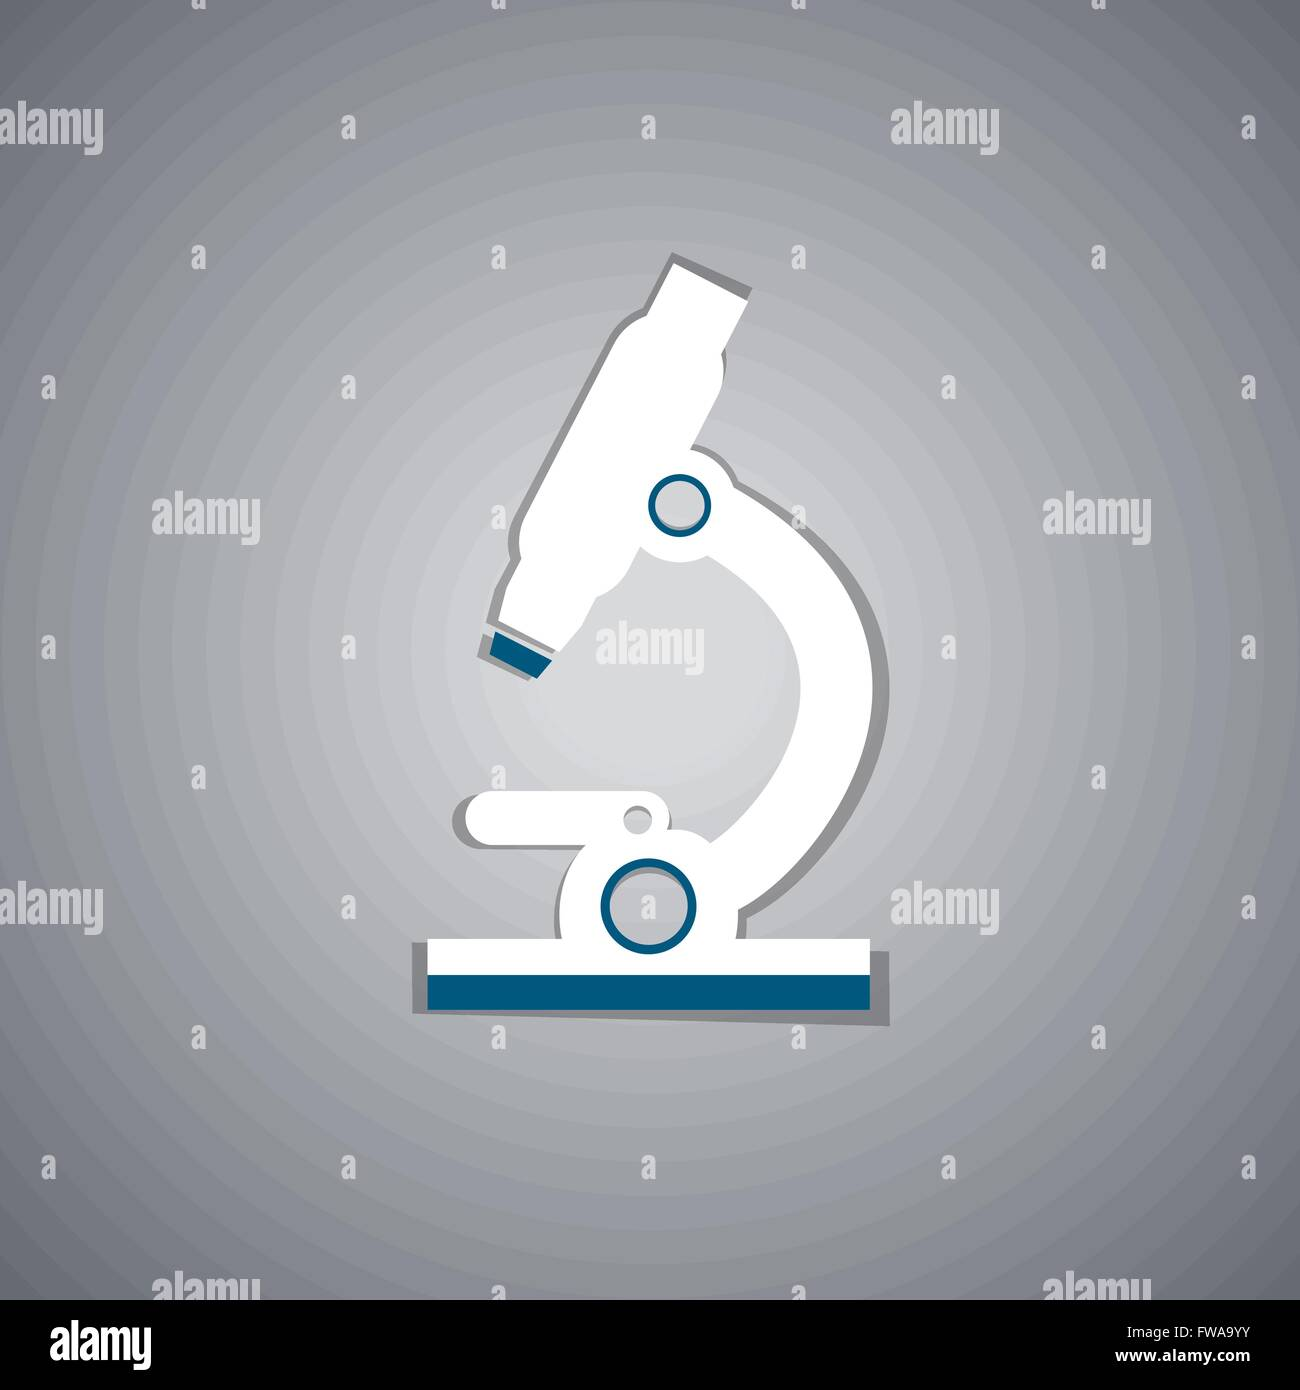 Microscope glyph icon. - Stock Image